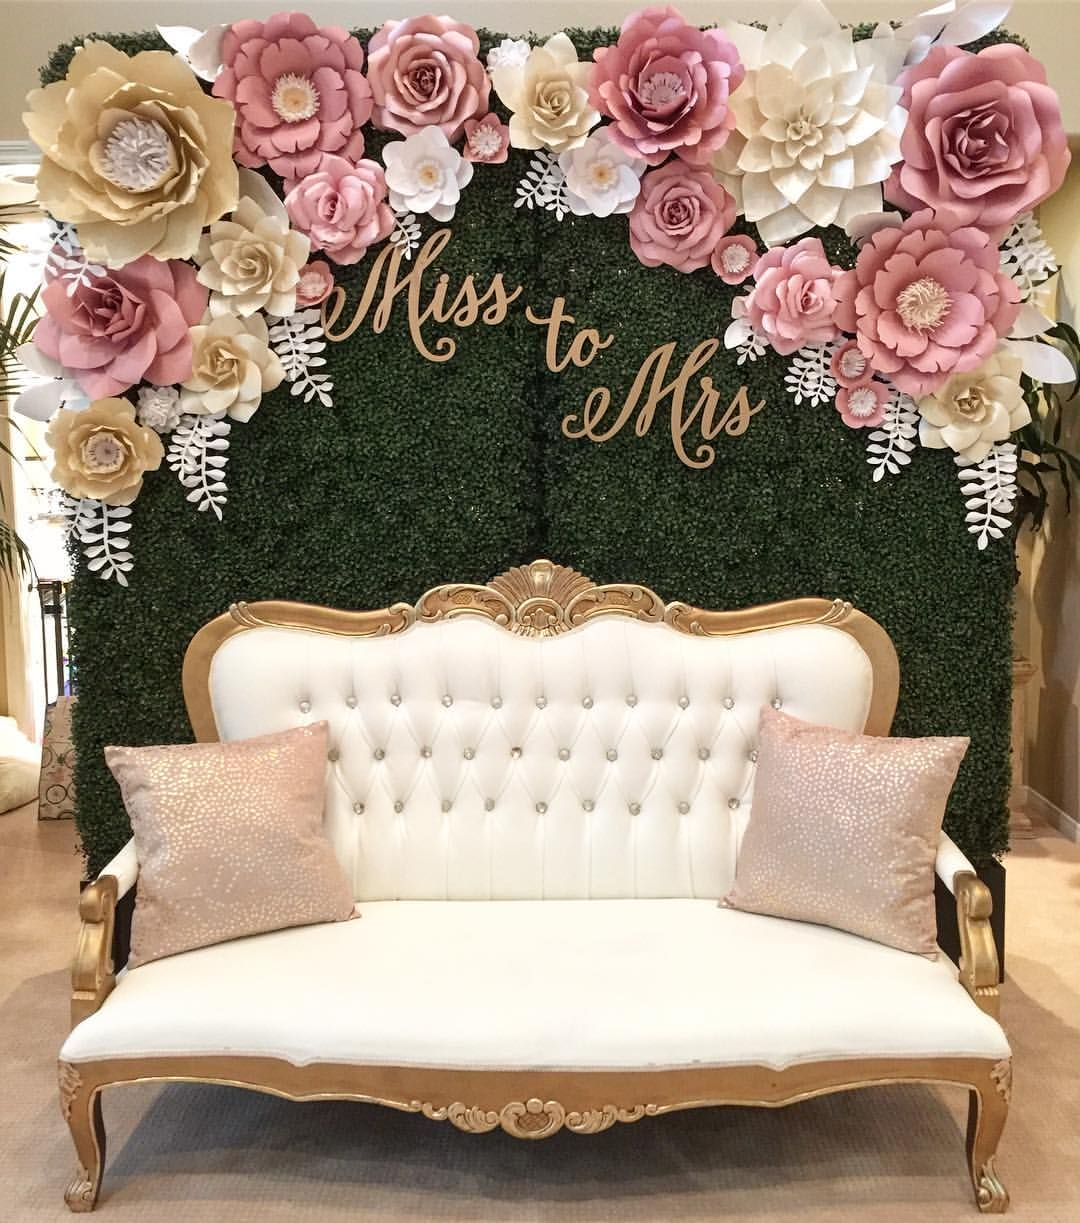 bleu dahlia anh tran thebleudahlia su instagram dusty pink and champagne gold flowers makes a stunning backdrop for this bridal shower signage